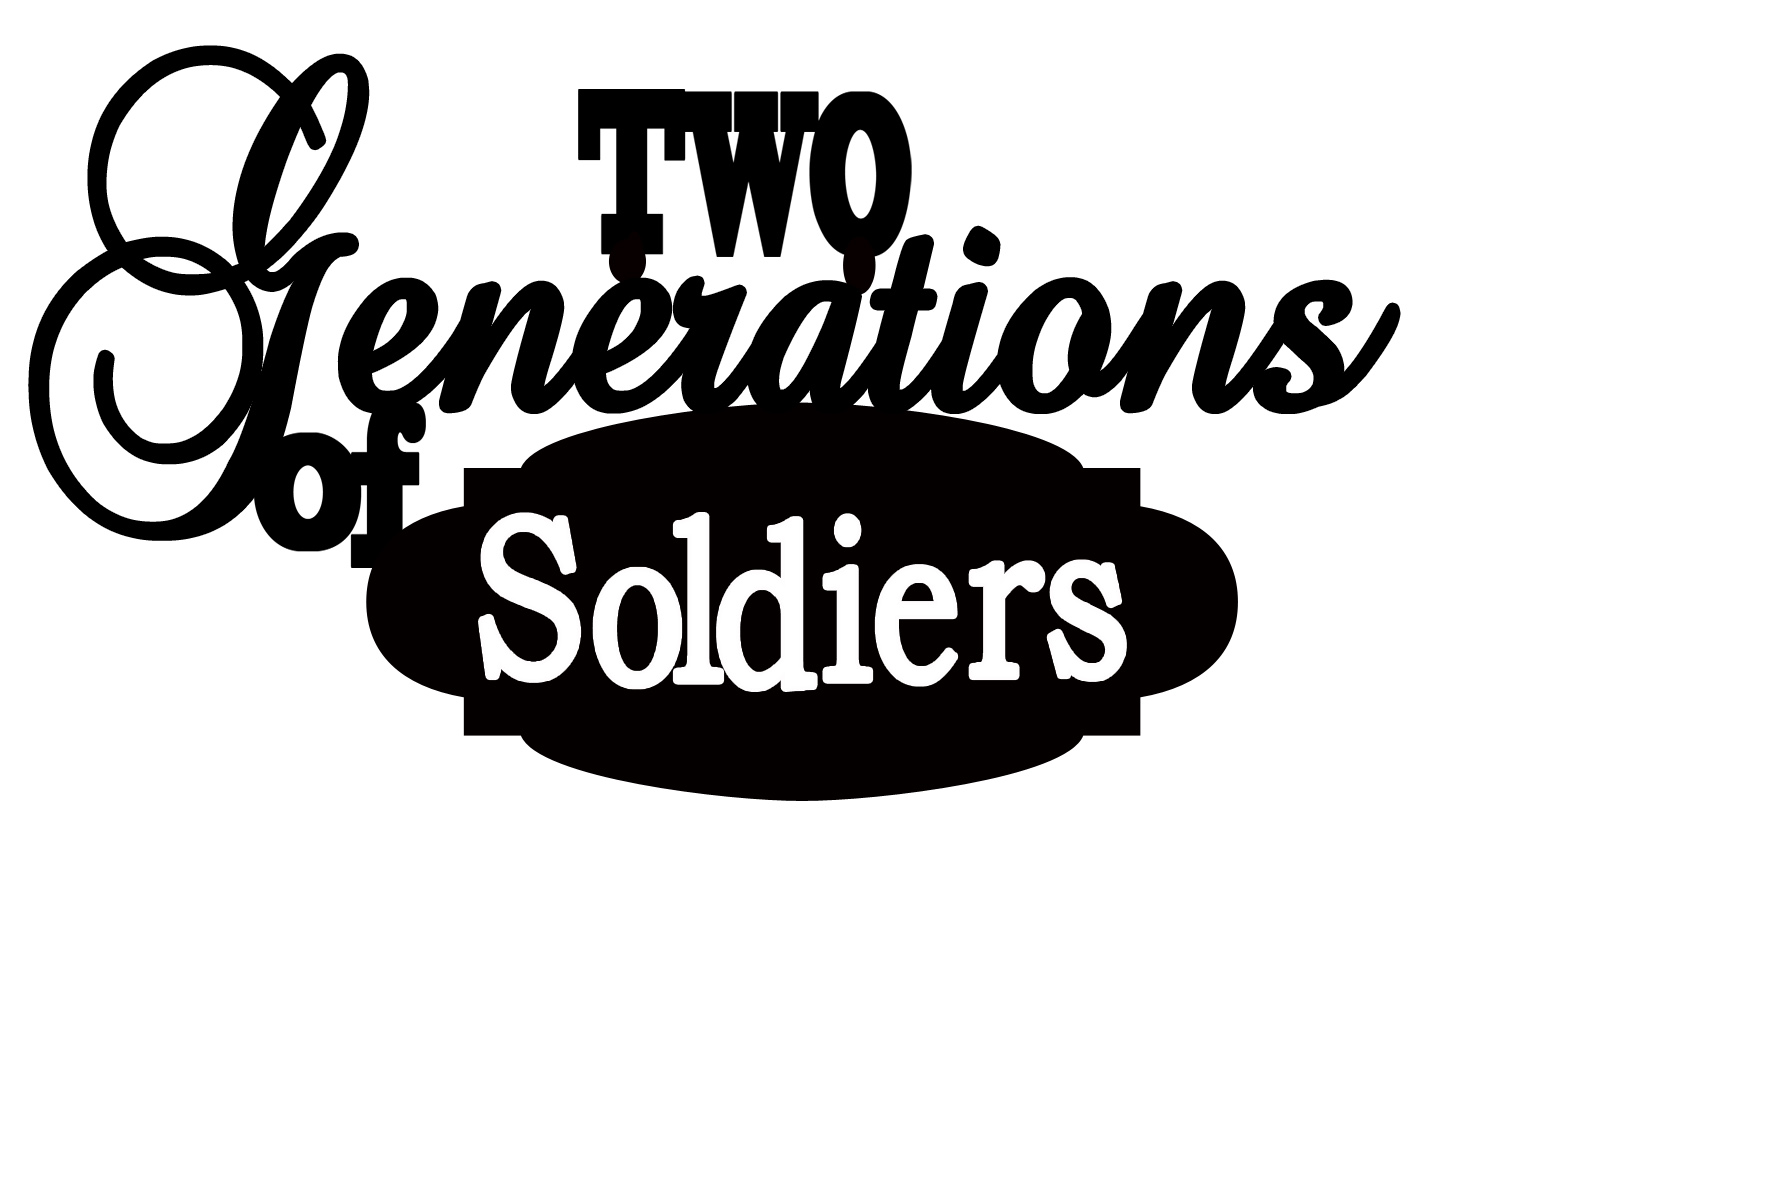 two generations of soldiers  min buy 3 100 x 130